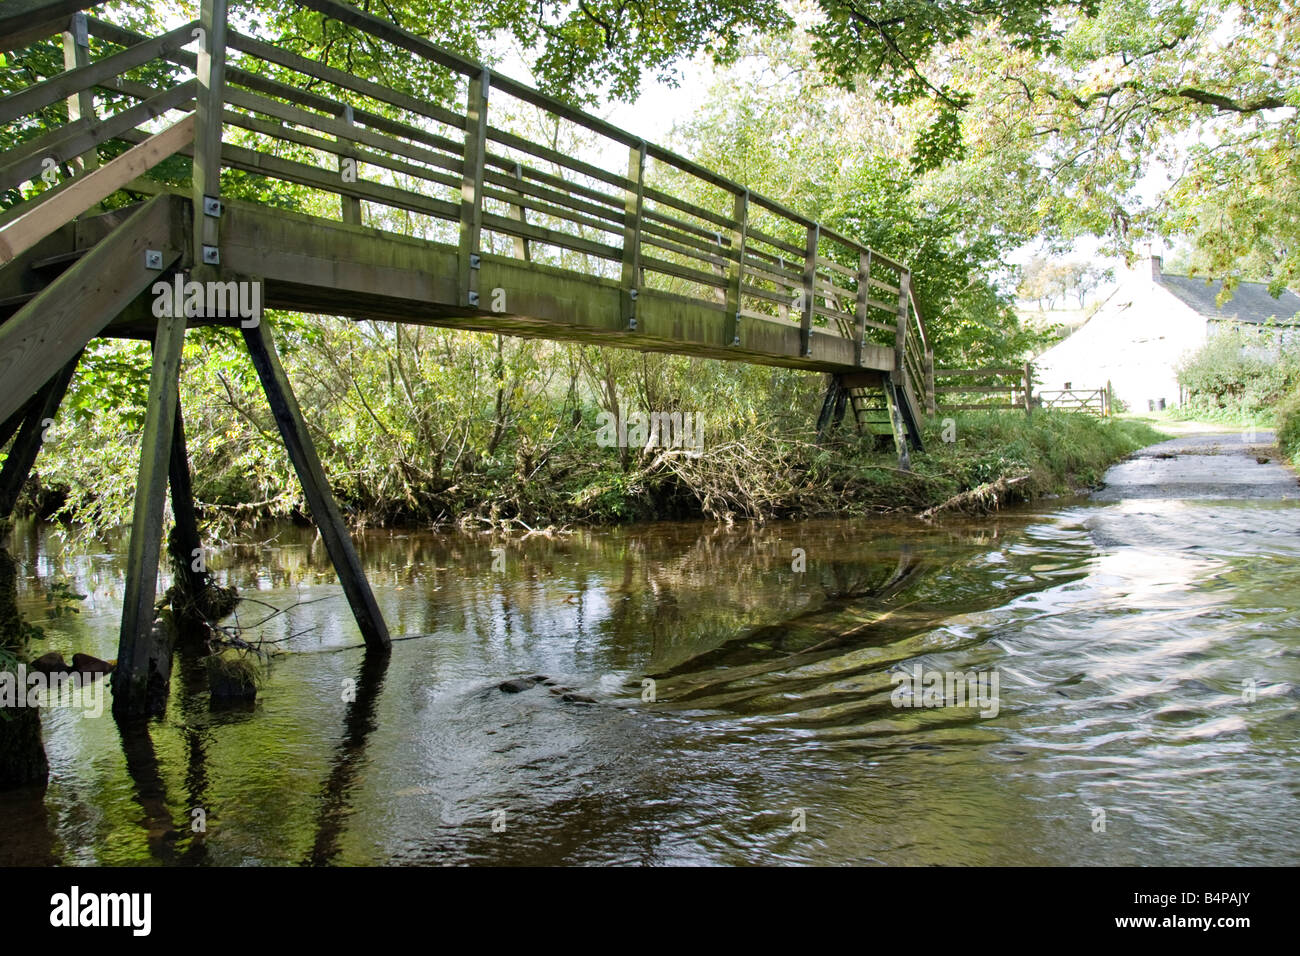 a wooden footbridge fording a little river or stream - Stock Image